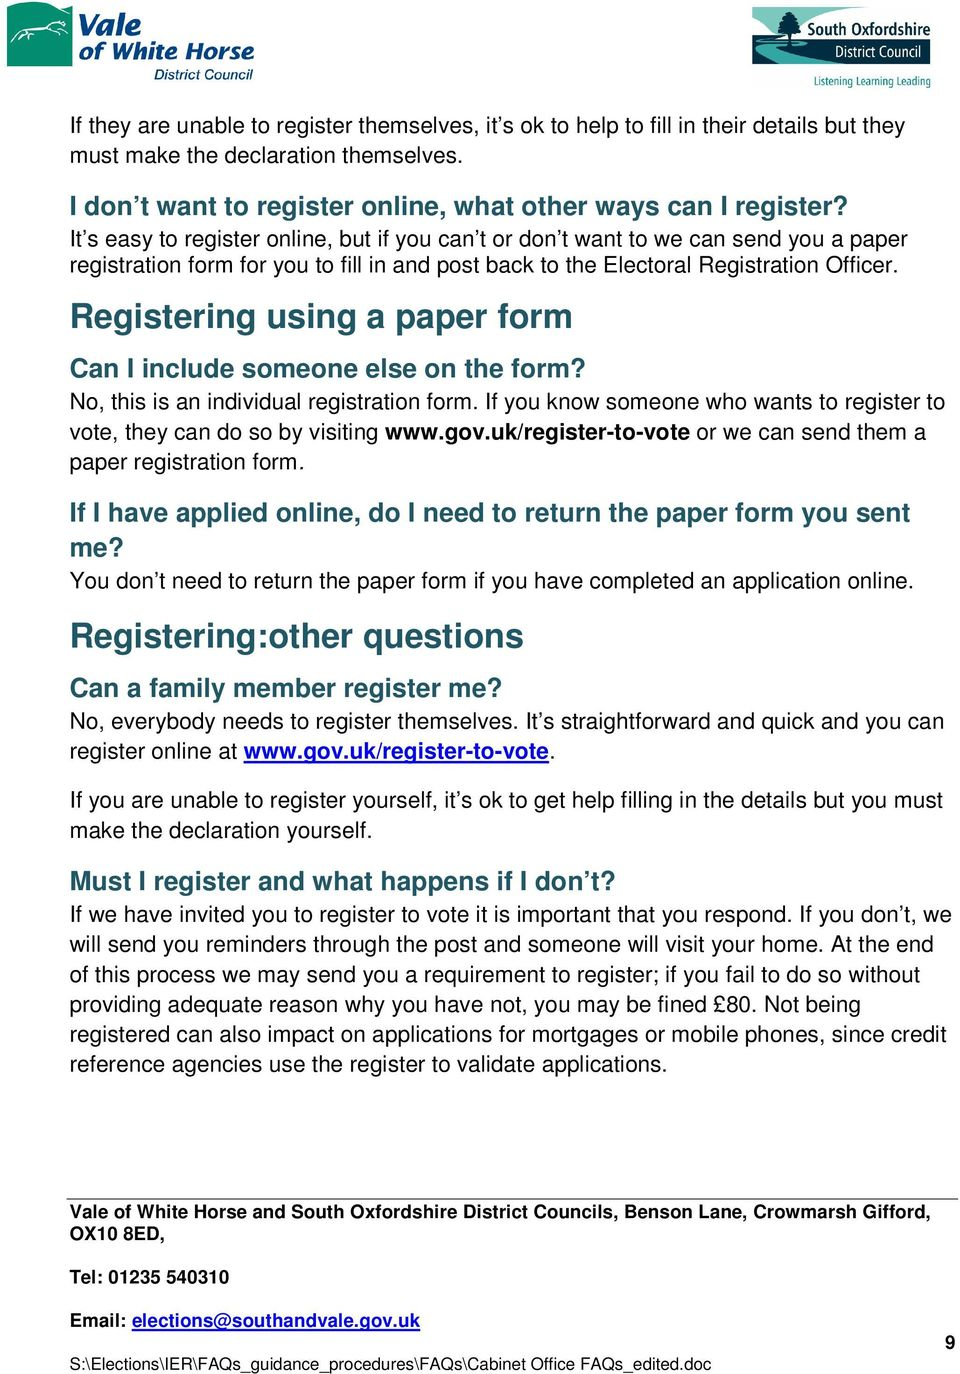 Registering using a paper form Can I include someone else on the form? No, this is an individual registration form. If you know someone who wants to register to vote, they can do so by visiting www.